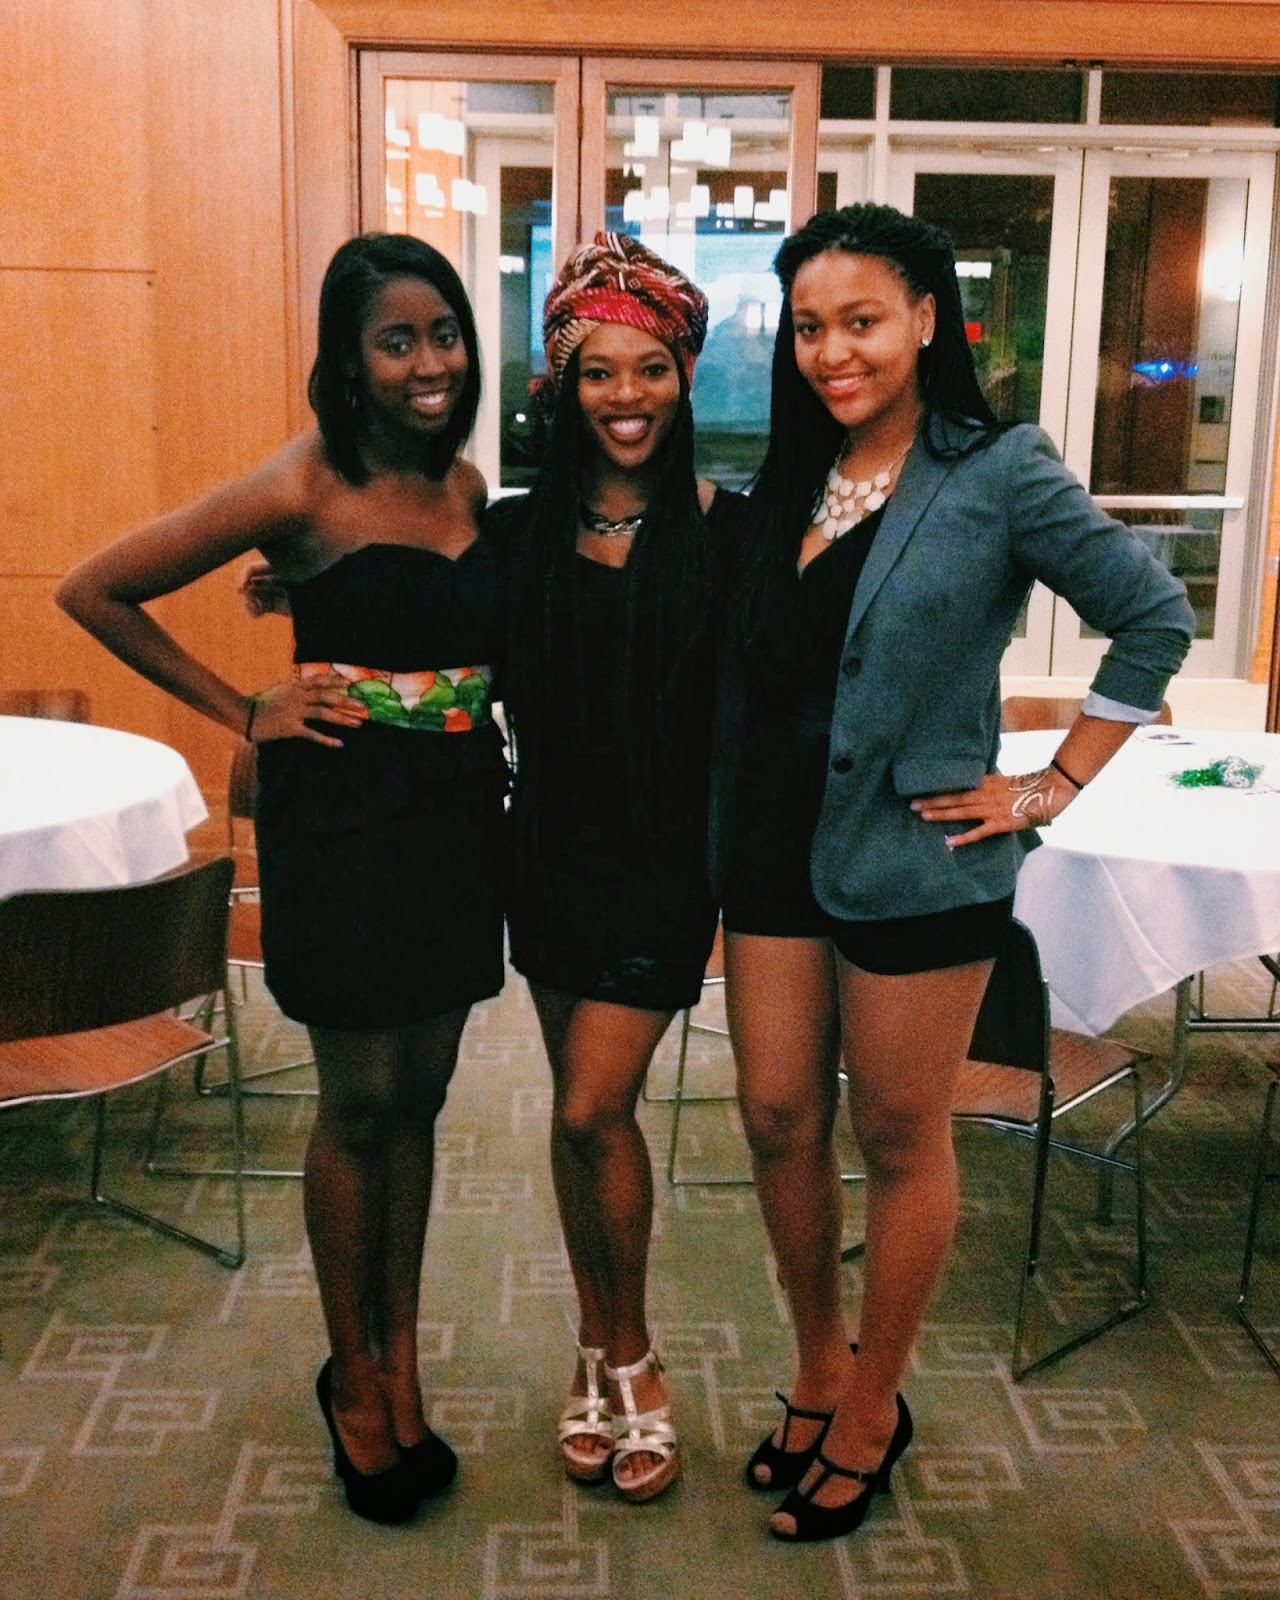 nigerian girls, smart nigerian girls, naija gal, naija gyal, african goddess, african harvard, hasa, african girls at harvard, harvard africa, nigerian harvard, nigerians at harvard, nigerians at ivy leage, nonye imo, monica ukah, headwrap, nigerian headwrap, nigerian gala, harvard nsa, harvard nigerian students association